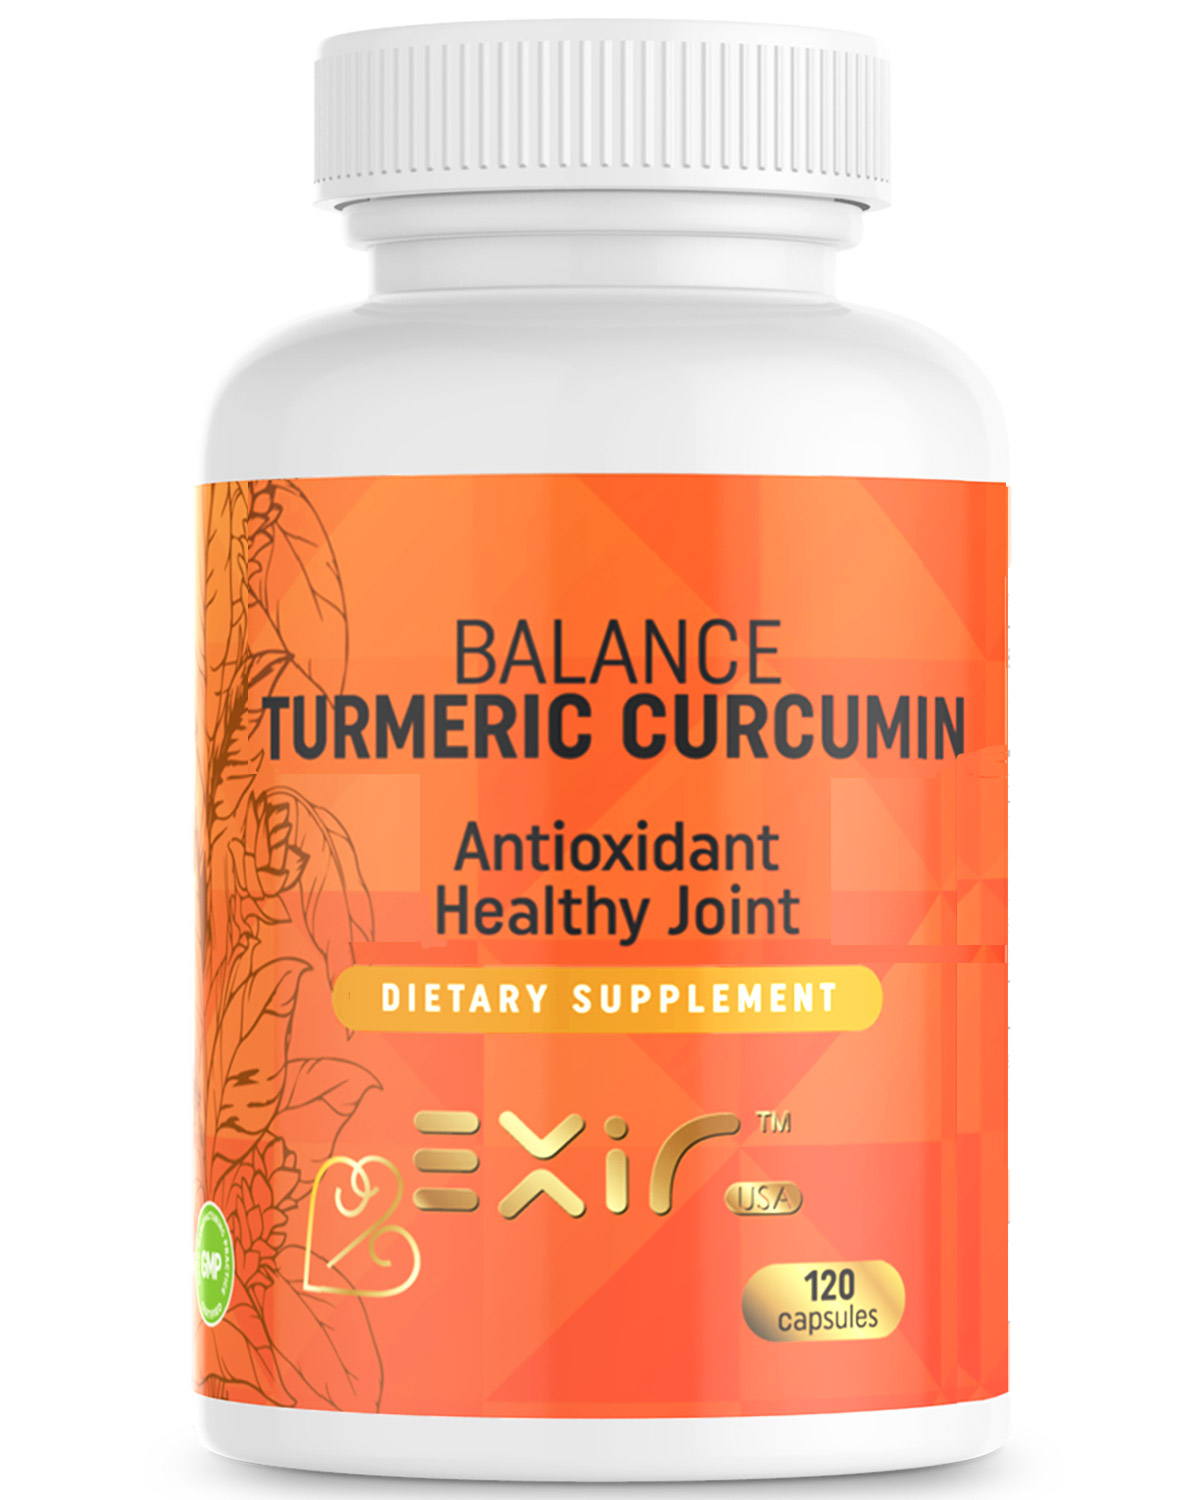 Joint Support & Inflammation Pain Relief, Prostate Health, Strong Immune System, Balance Turmeric Curcumin Supplement, 120 Capsules